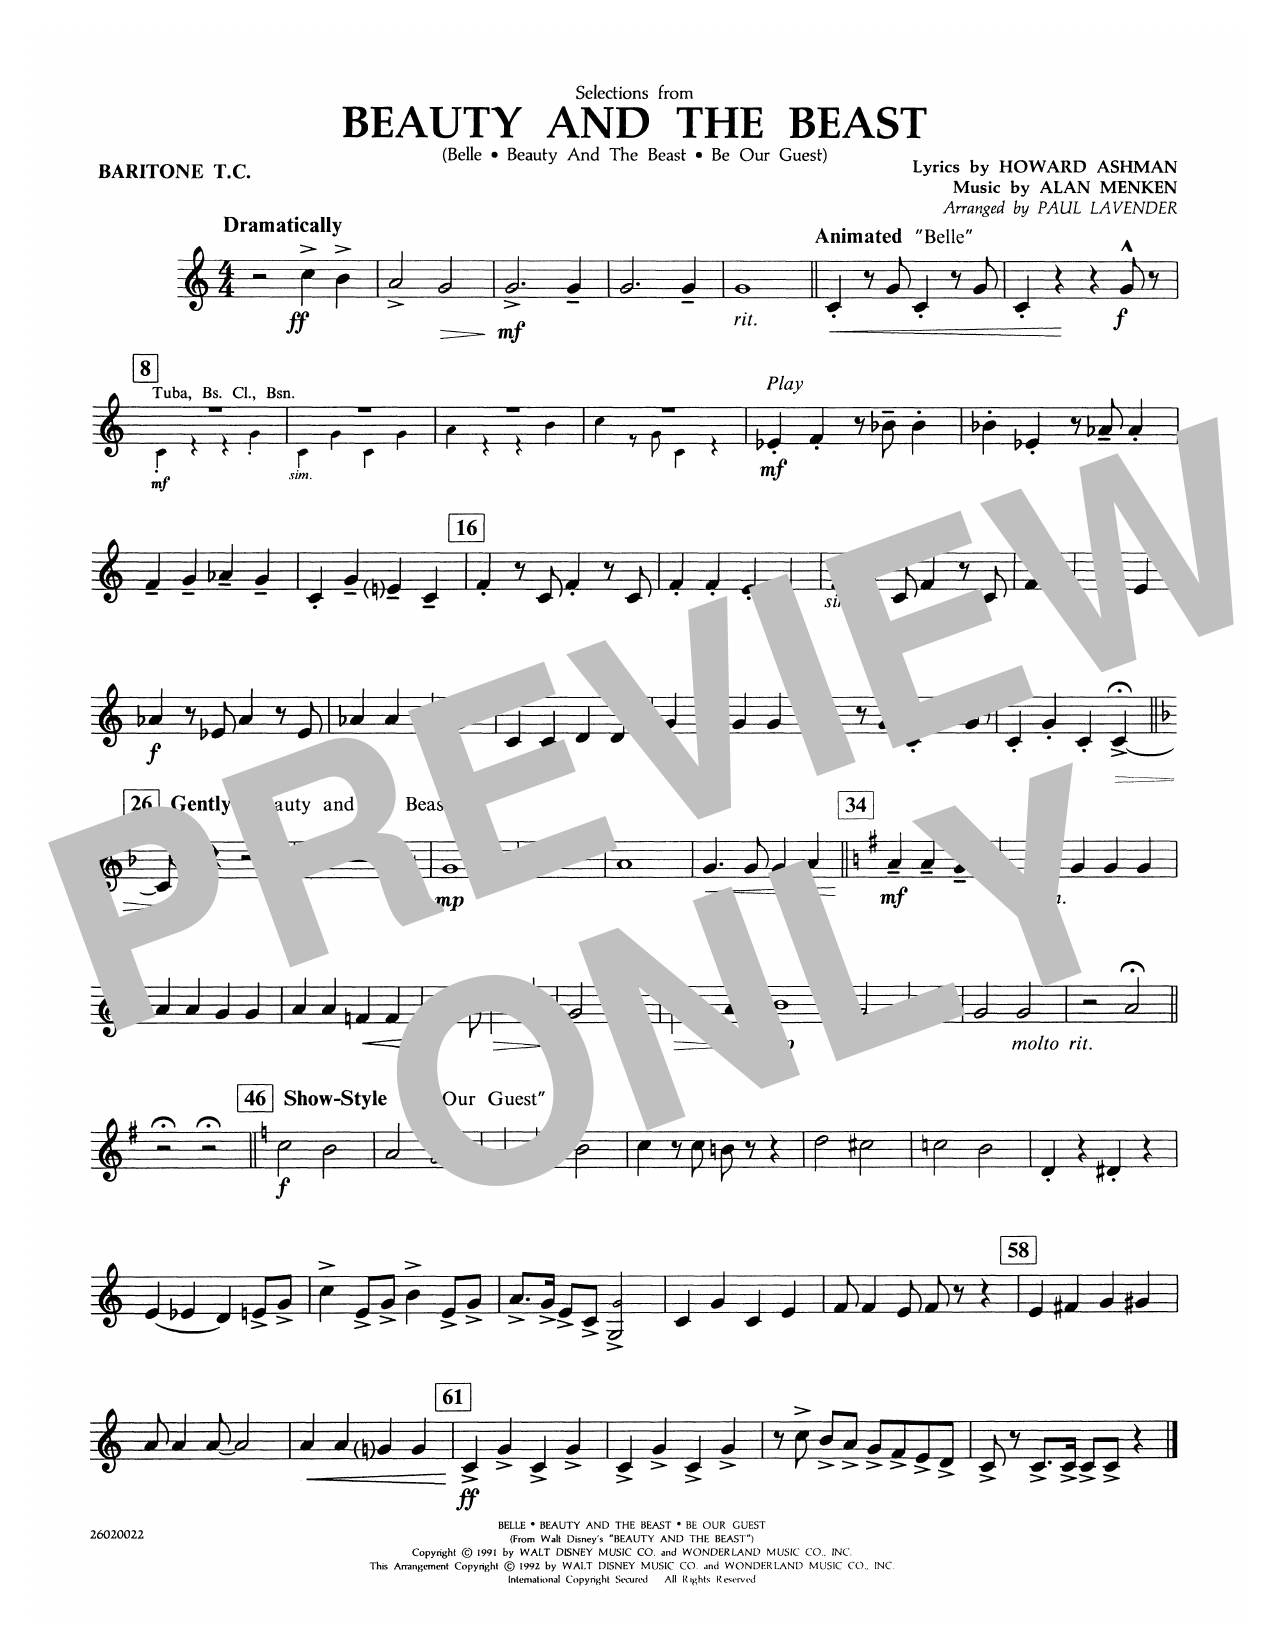 Paul Lavender Selections from Beauty and the Beast - Baritone T.C. sheet music notes and chords. Download Printable PDF.